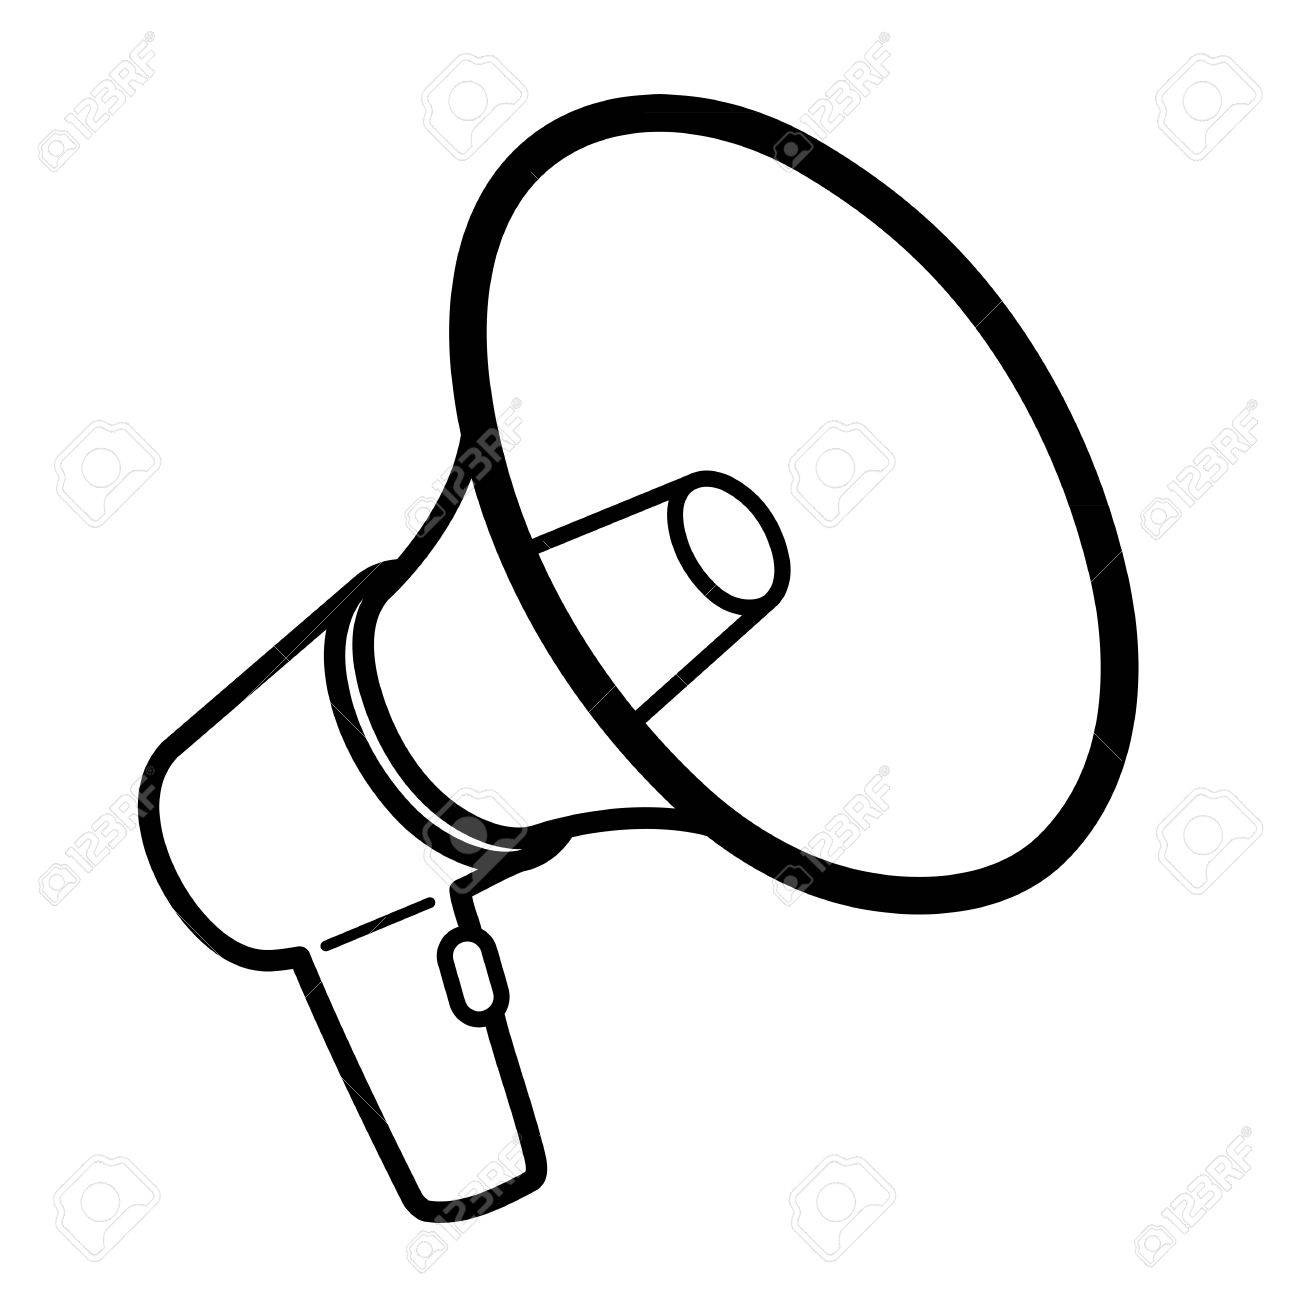 61954752 Black Outline Megaphone Or Bullhorn For Amplifying.